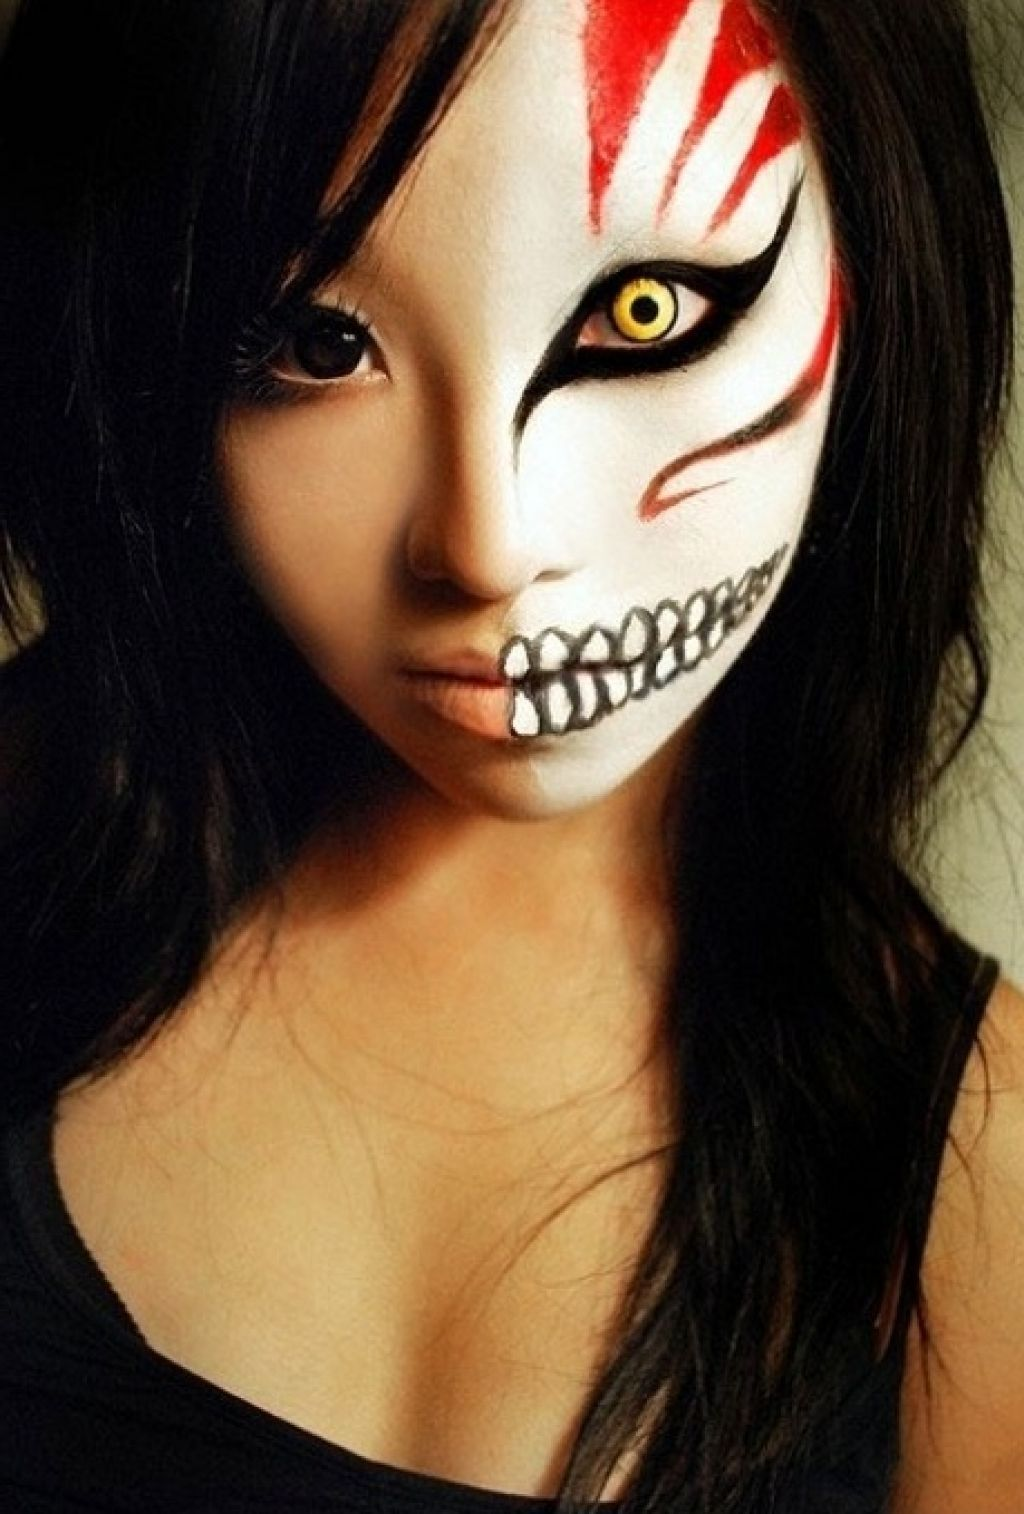 amazing mask designs - Google Search | Masks | Pinterest | Mask ...